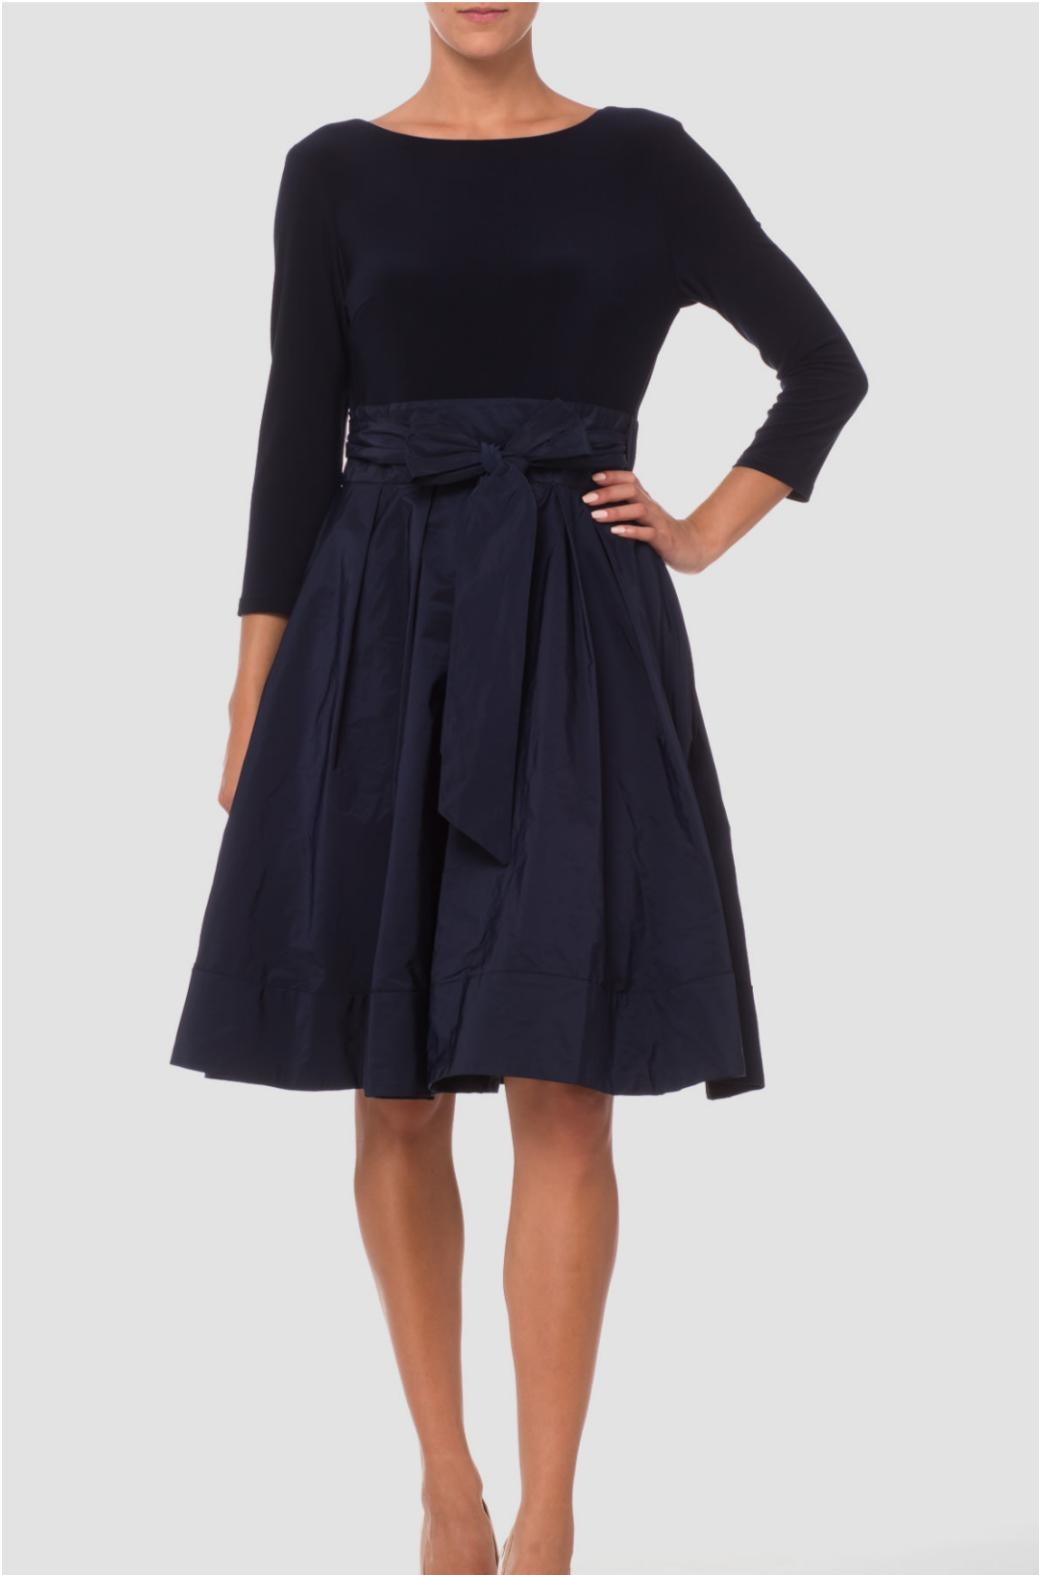 Joseph Ribkoff Cinched Waist Dress - Front Cropped Image